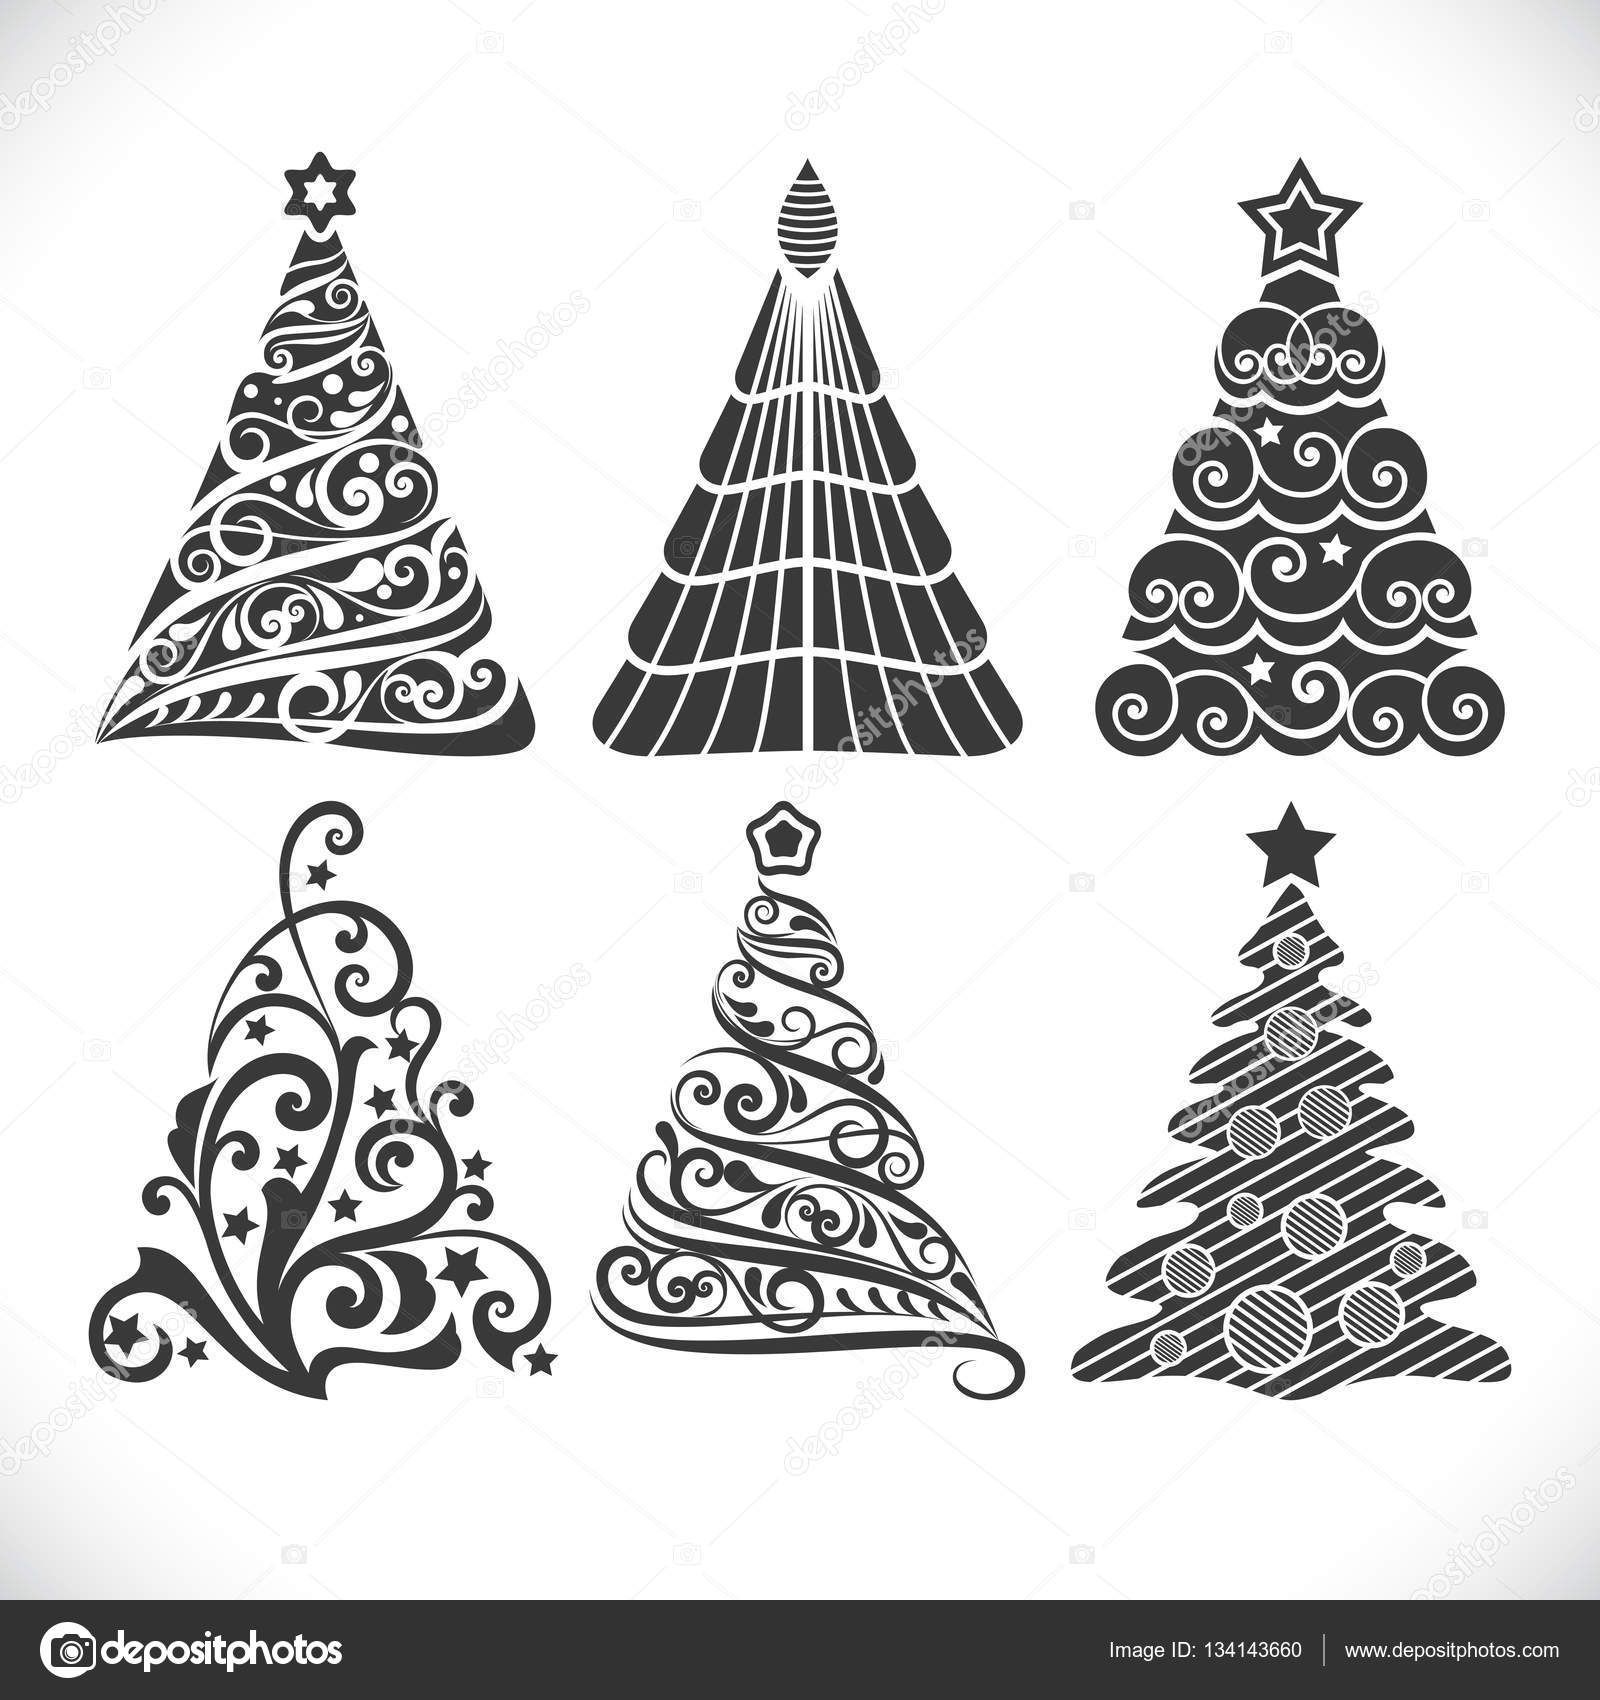 Christmas tree black shapes set isolated on white background for